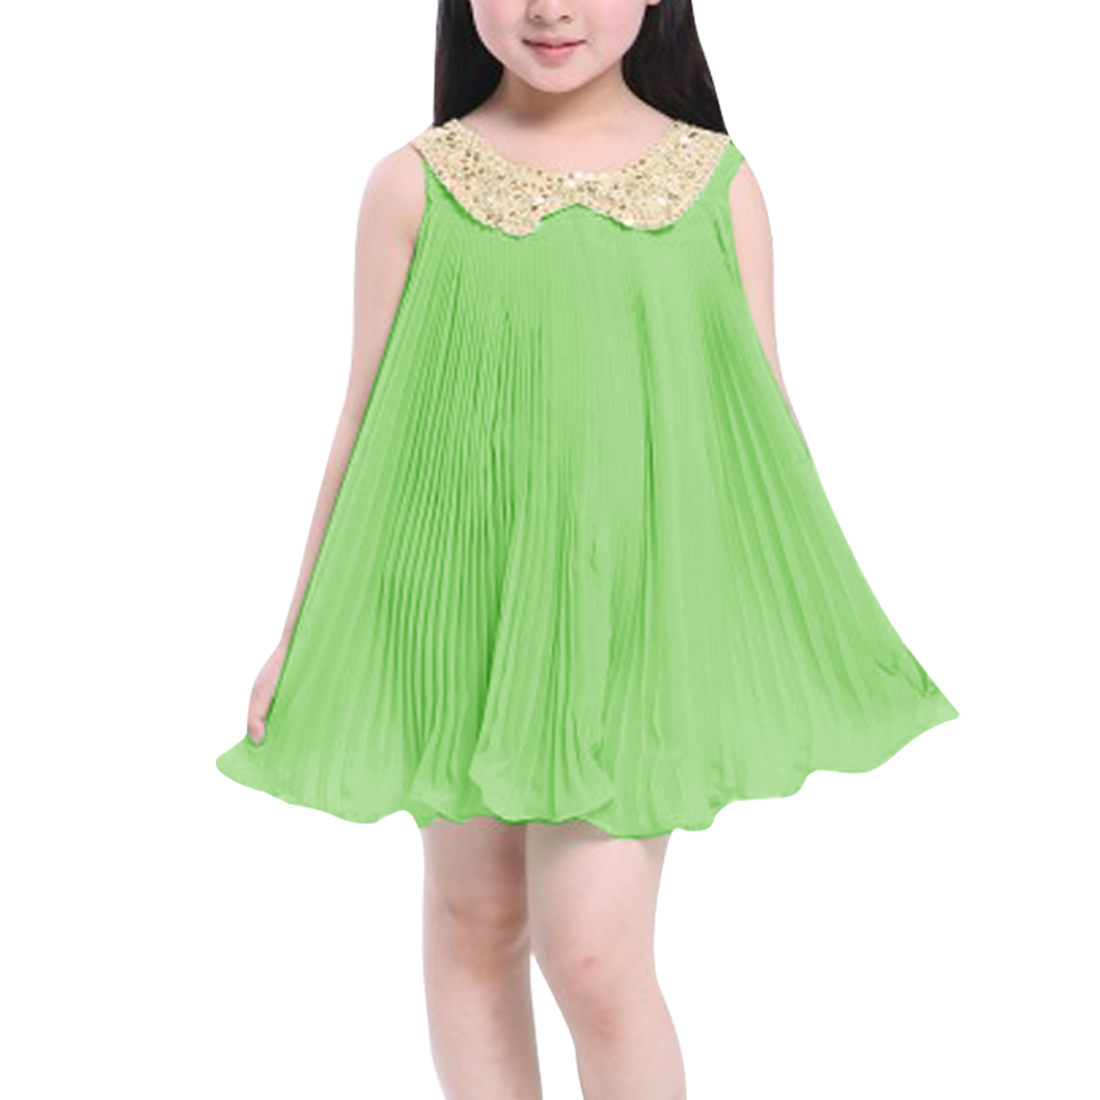 NEW Girls Crochet Sequined Doll Collar Pleated Light Green Dress 12